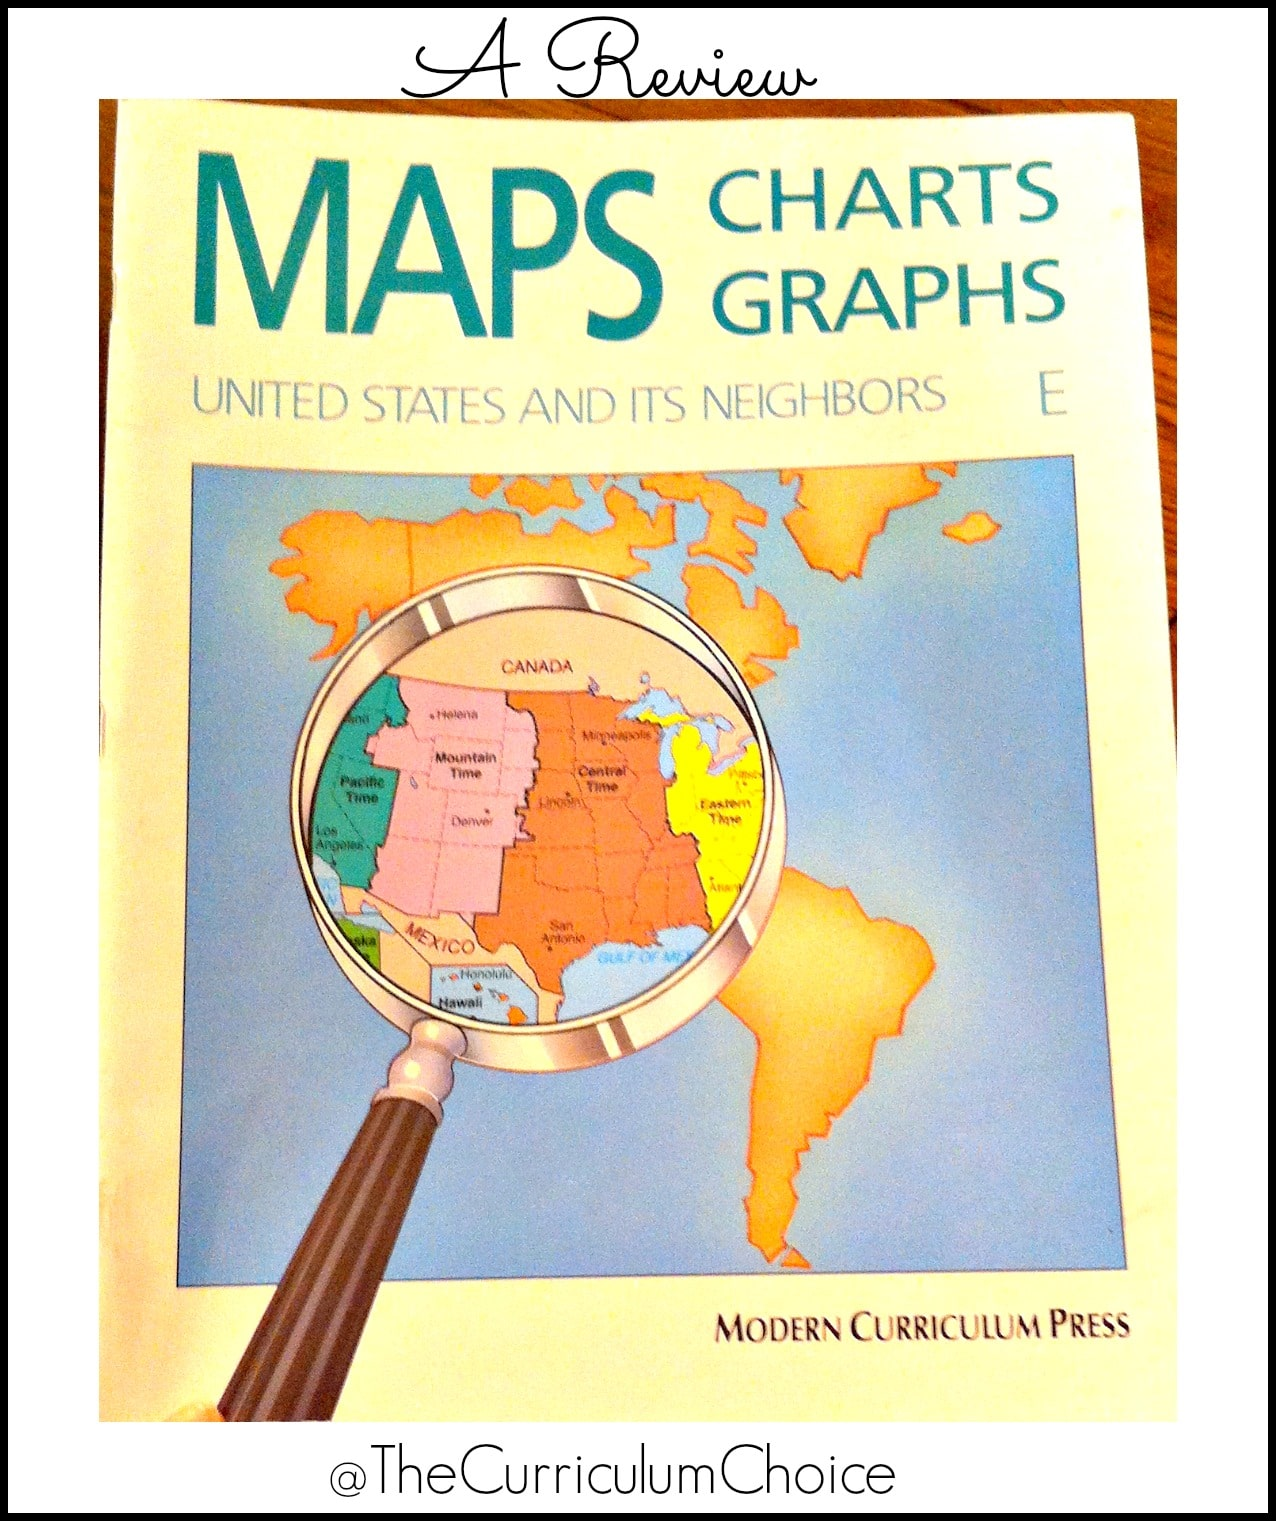 Maps Charts Graphs Review